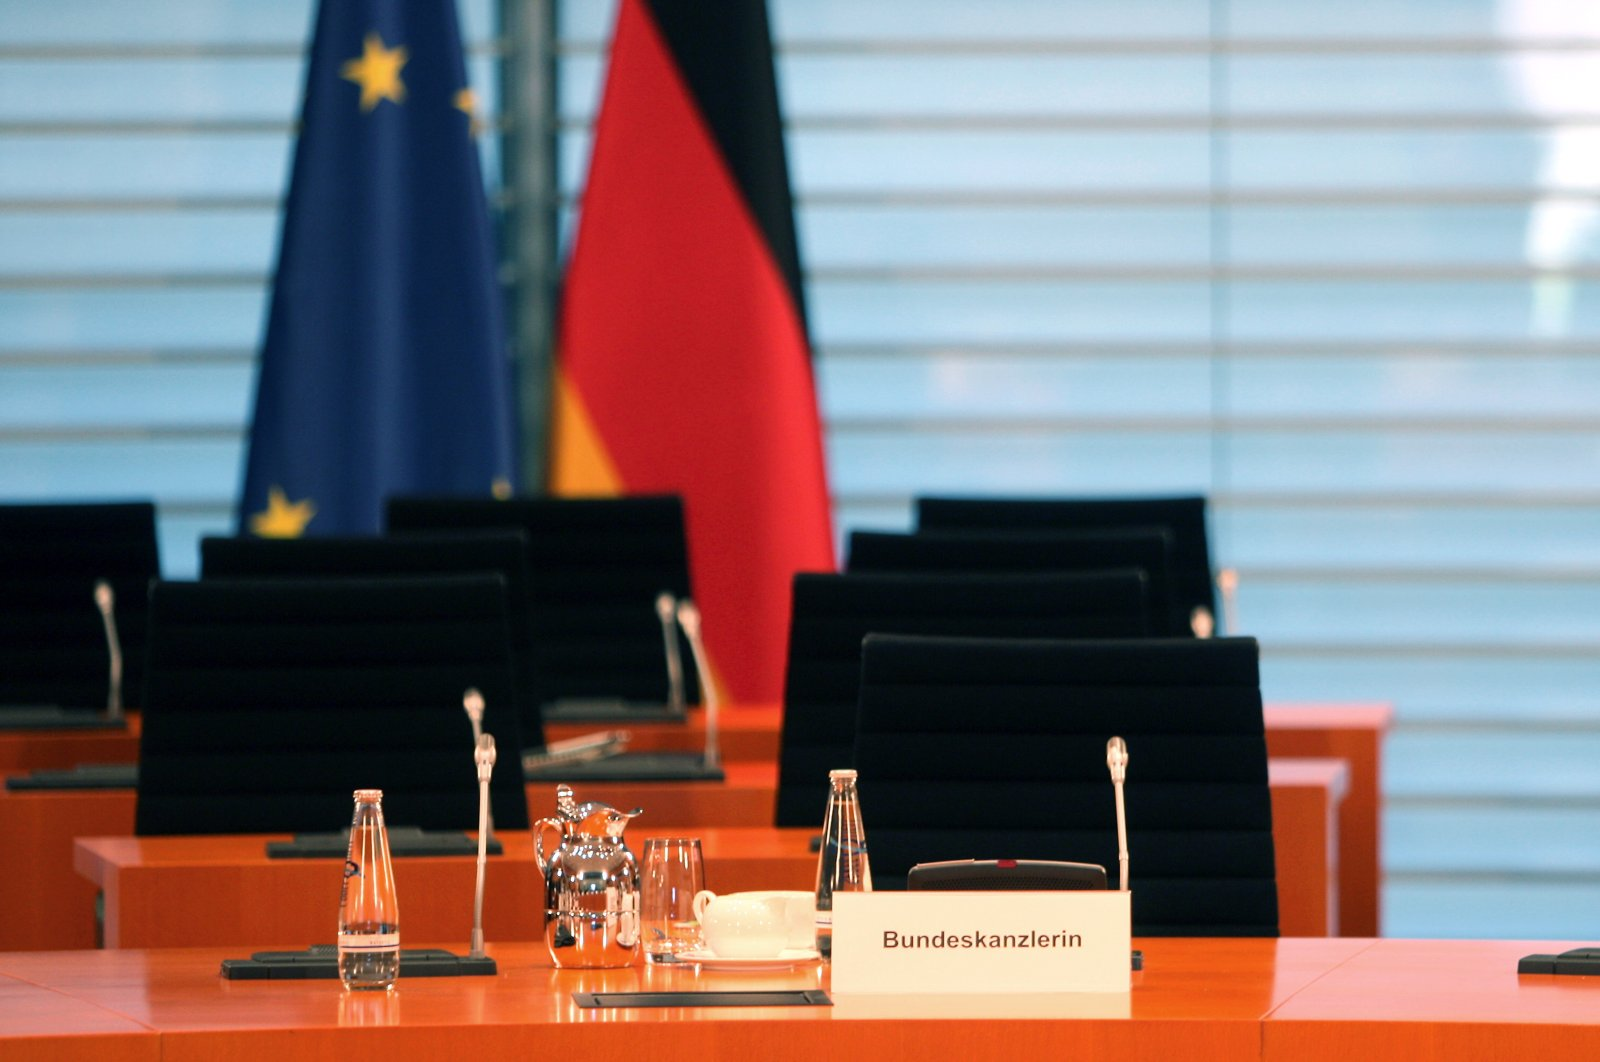 The empty seat of German Chancellor Angela Merkel, who is in home quarantine during the weekly cabinet meeting in Berlin, Germany, Monday, March 23, 2020. (EPA Photo)